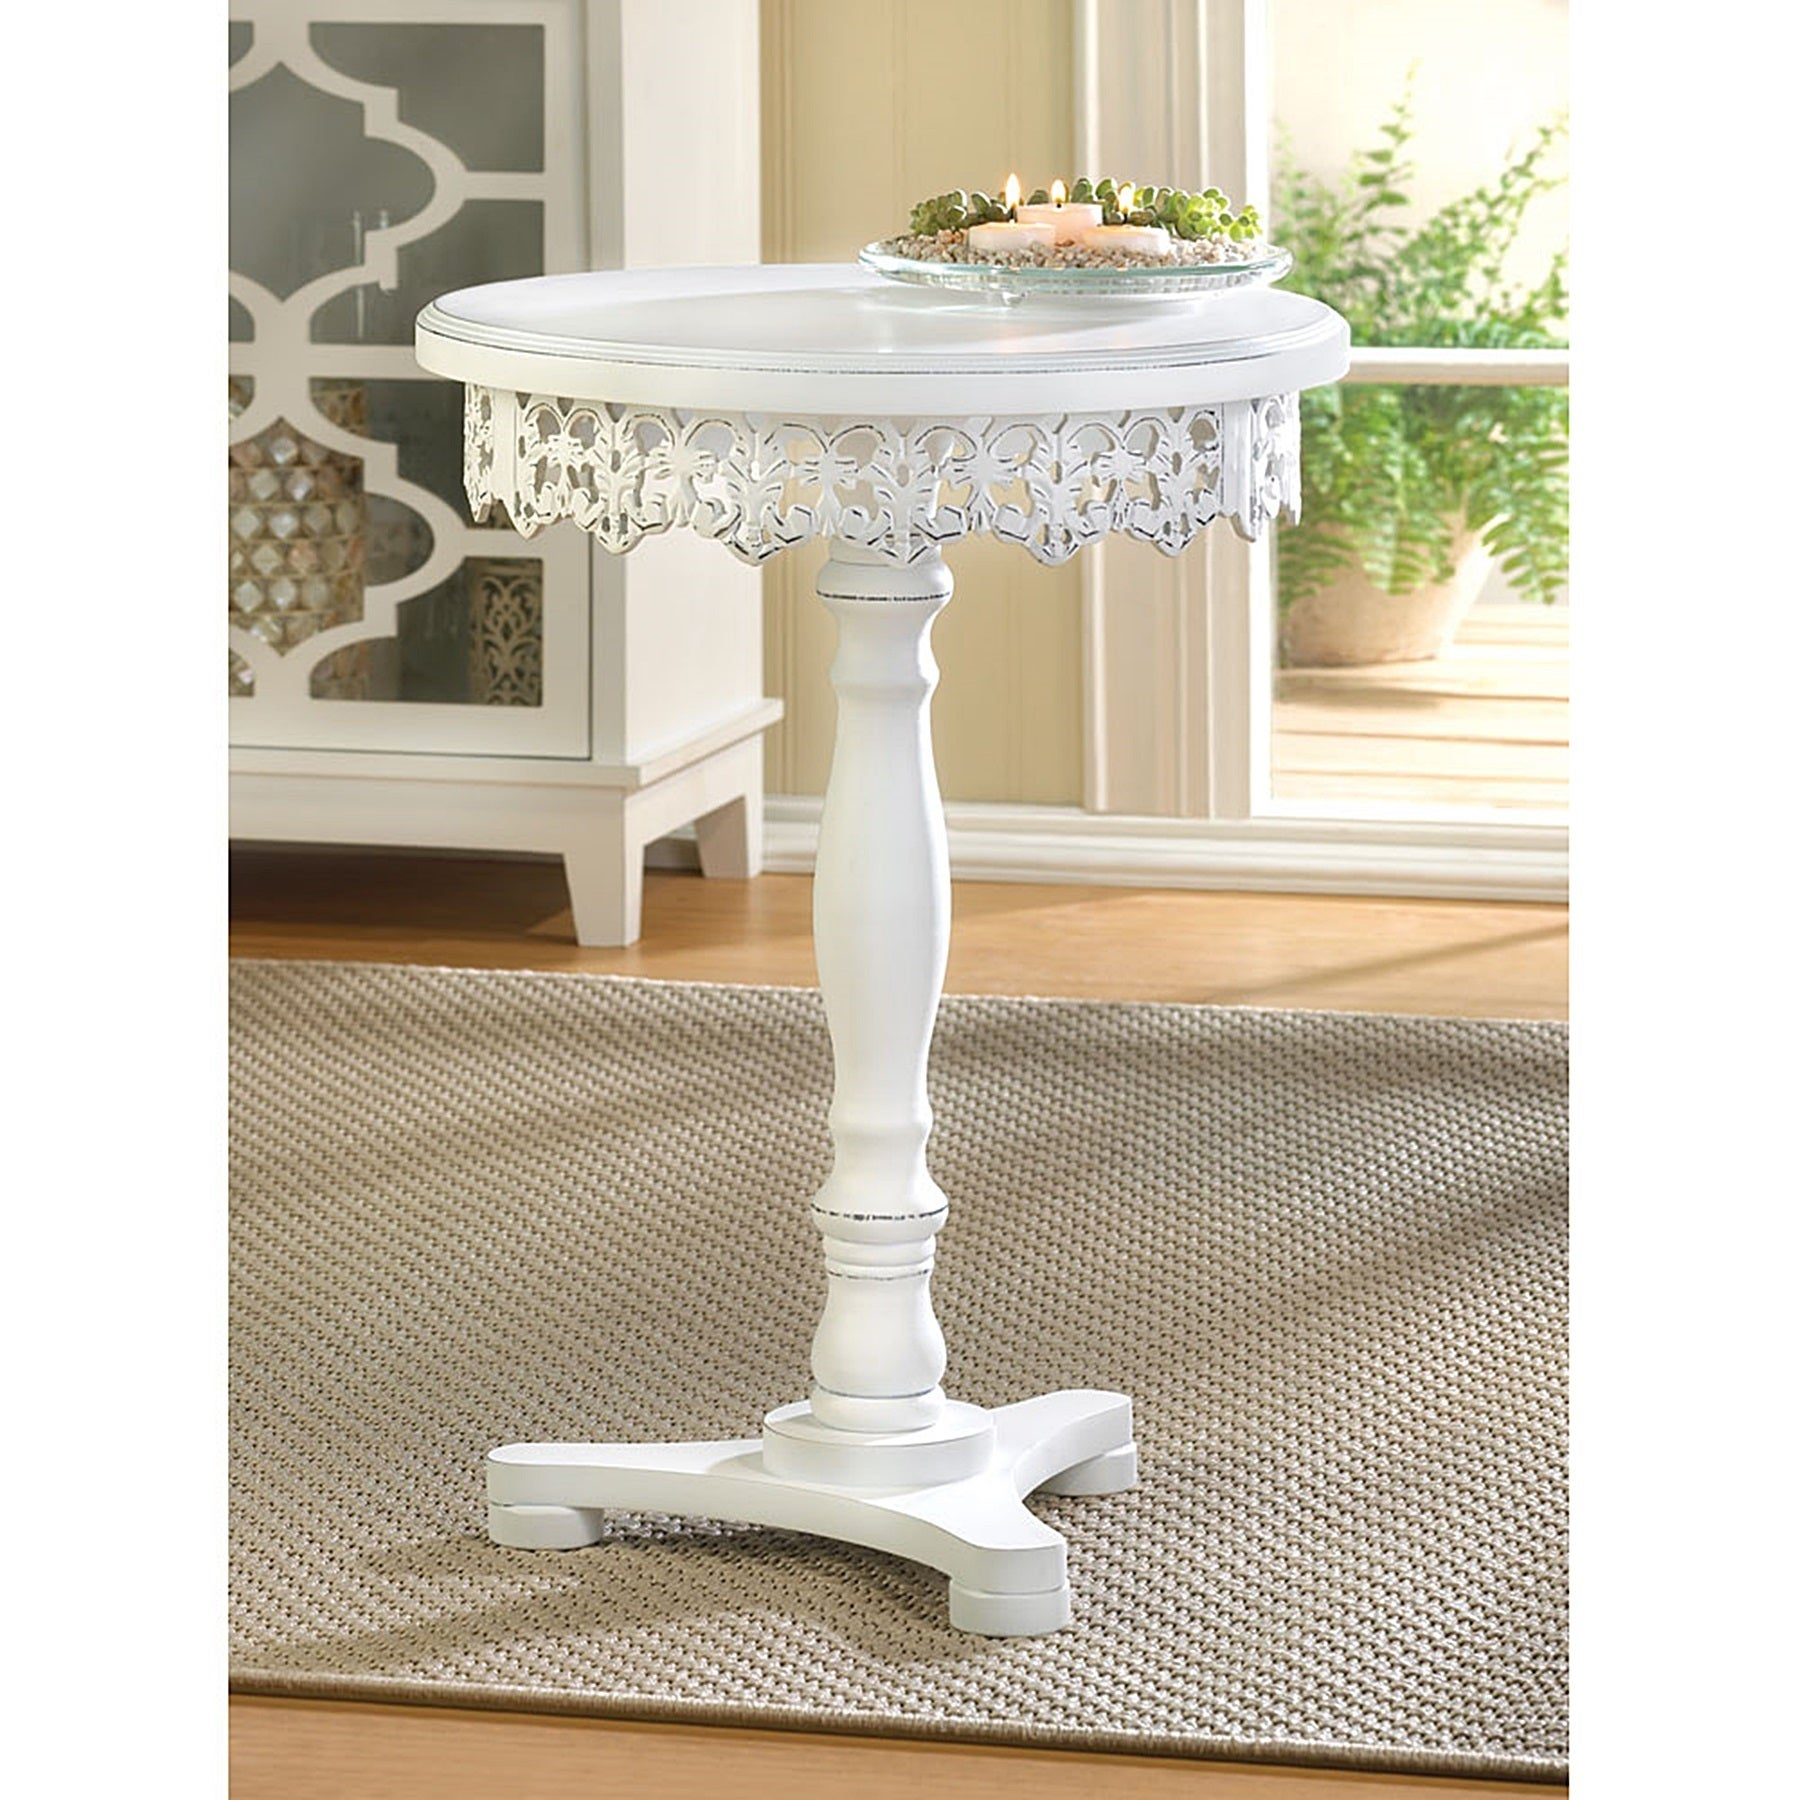 Shop Lacy Antique White Finish Wooden Round Side Table On Sale